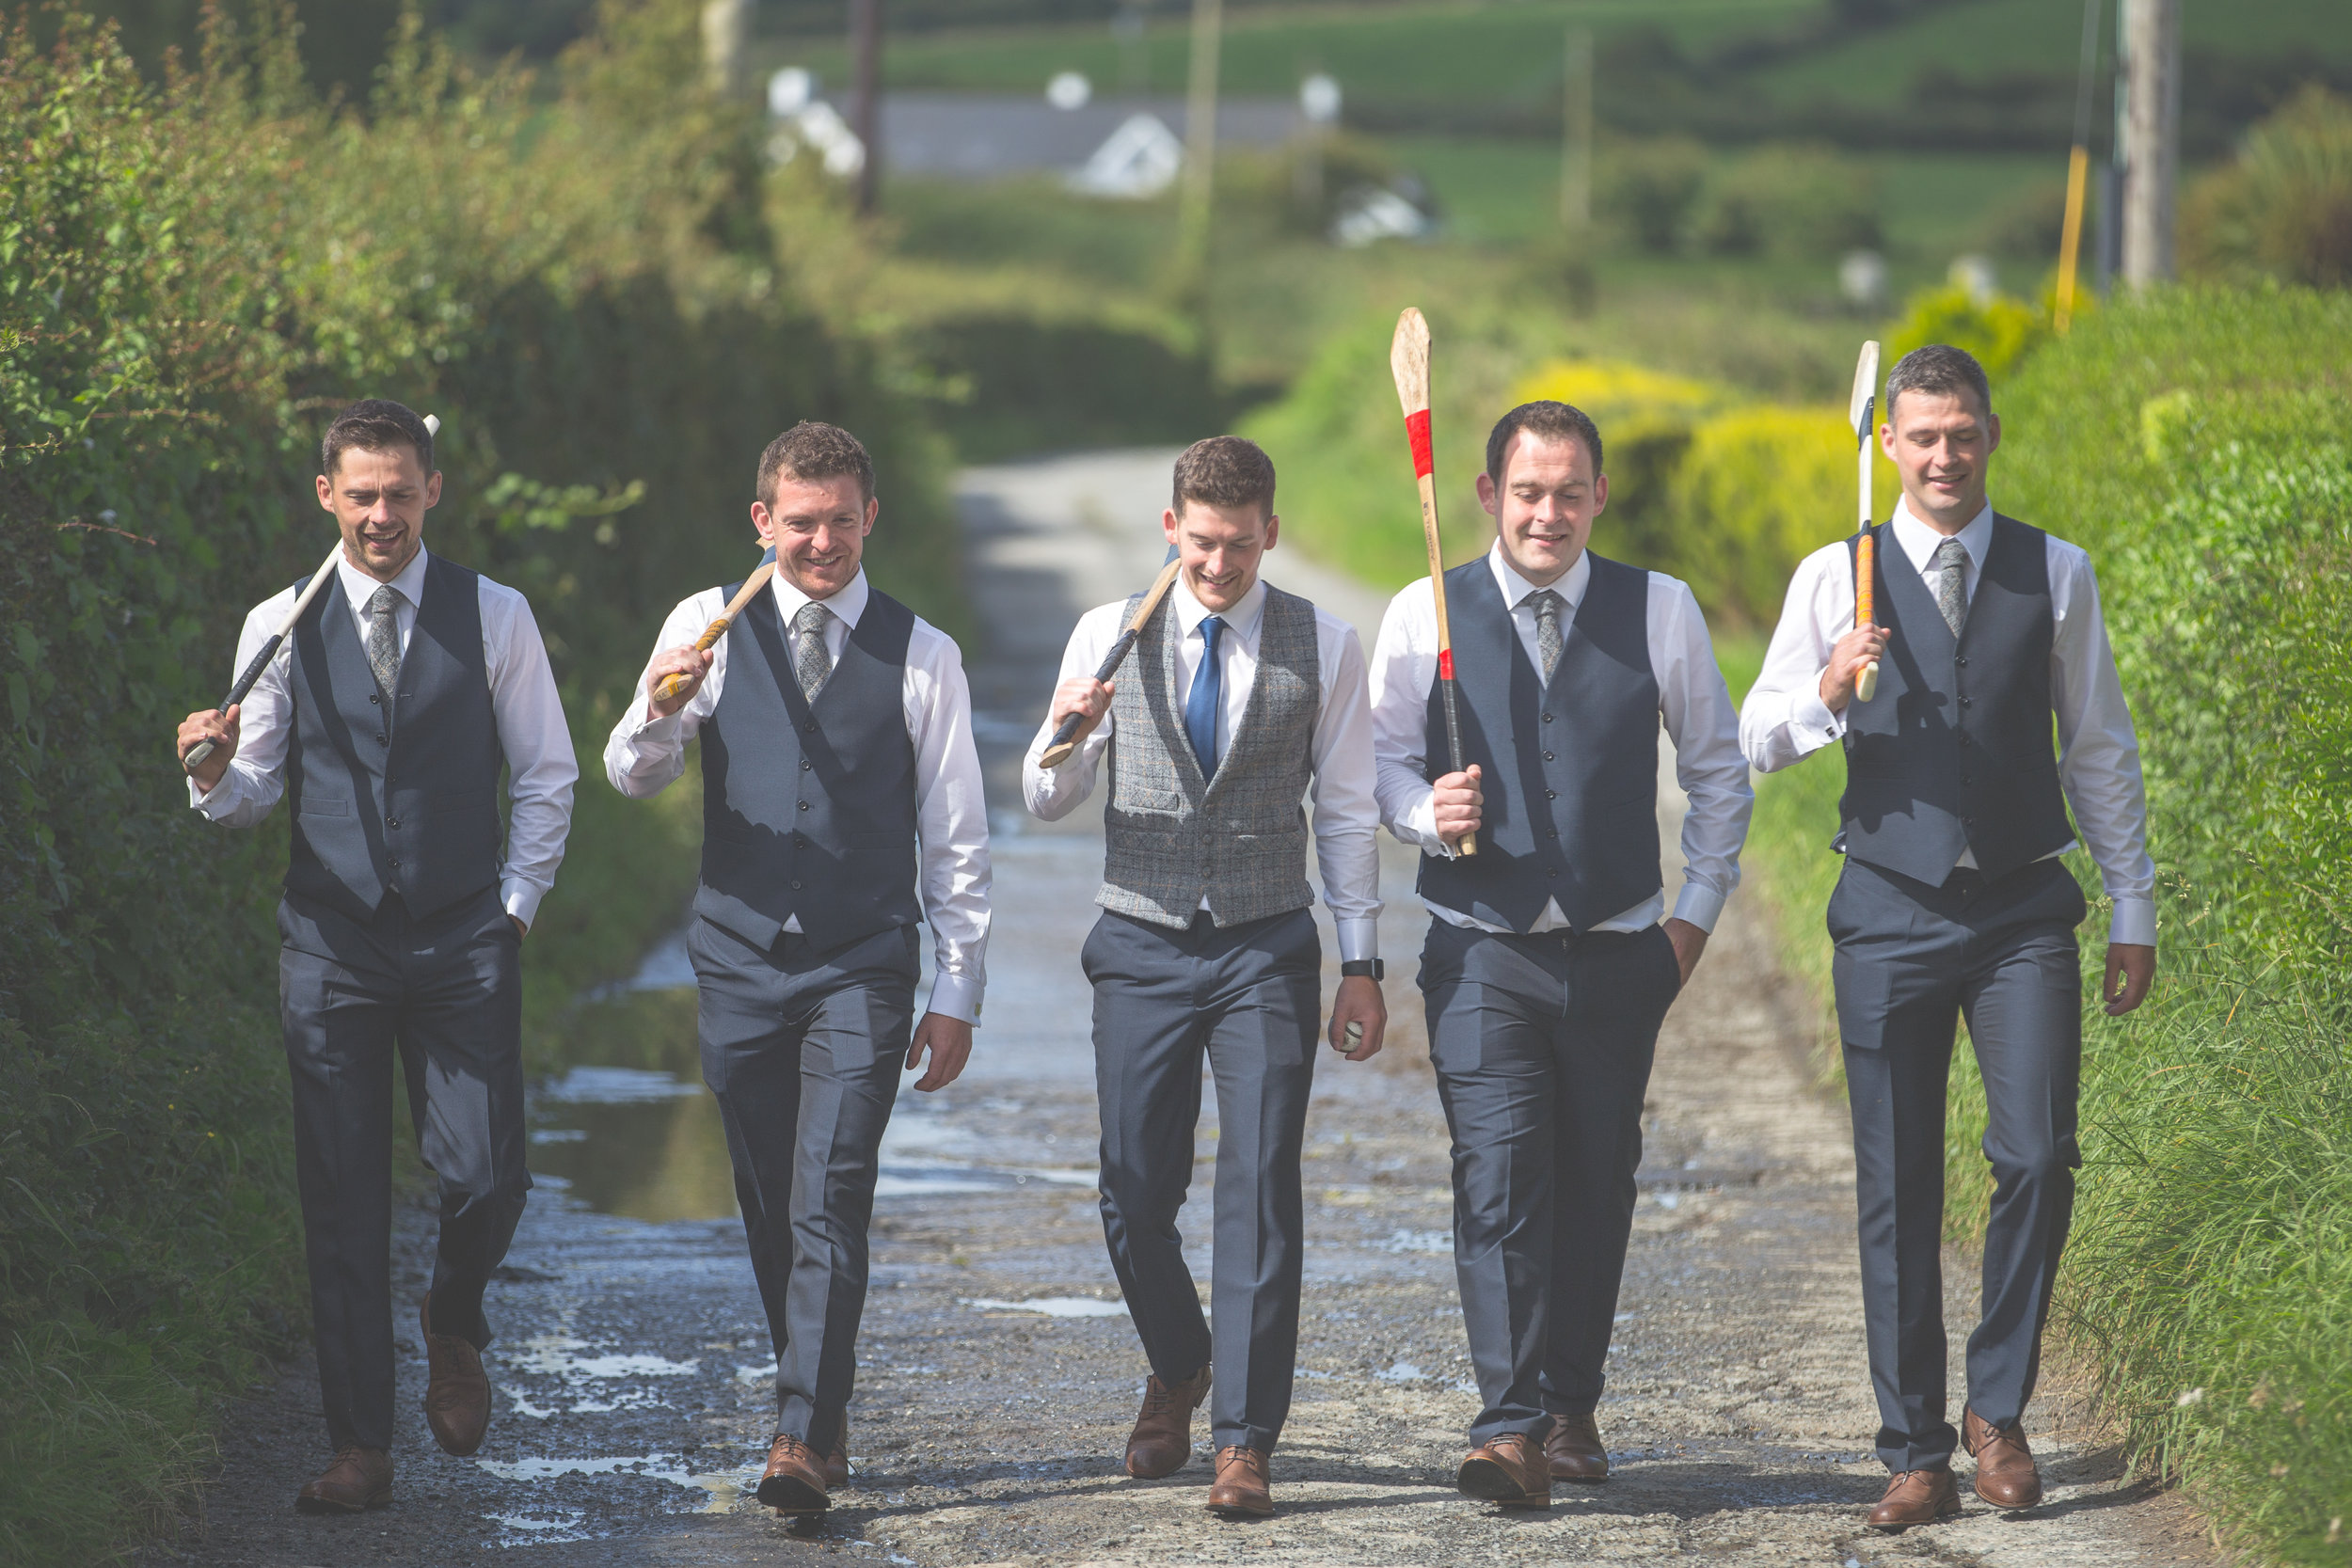 Brian McEwan Wedding Photography | Carol-Anne & Sean | Groom & Groomsmen-57.jpg